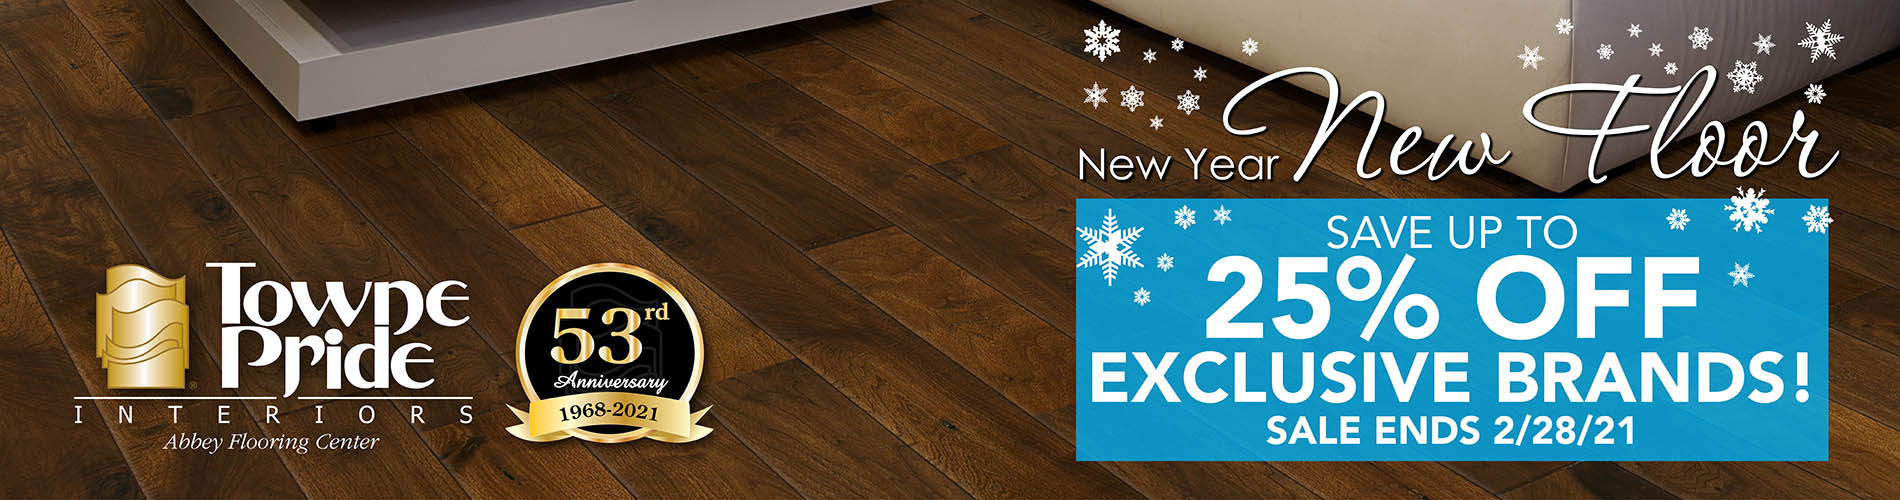 New Year New Floor! Save up to 25% off exclusive brands now through 2/28/21! Only at Towne Pride Interiors Abbey Flooring Center.